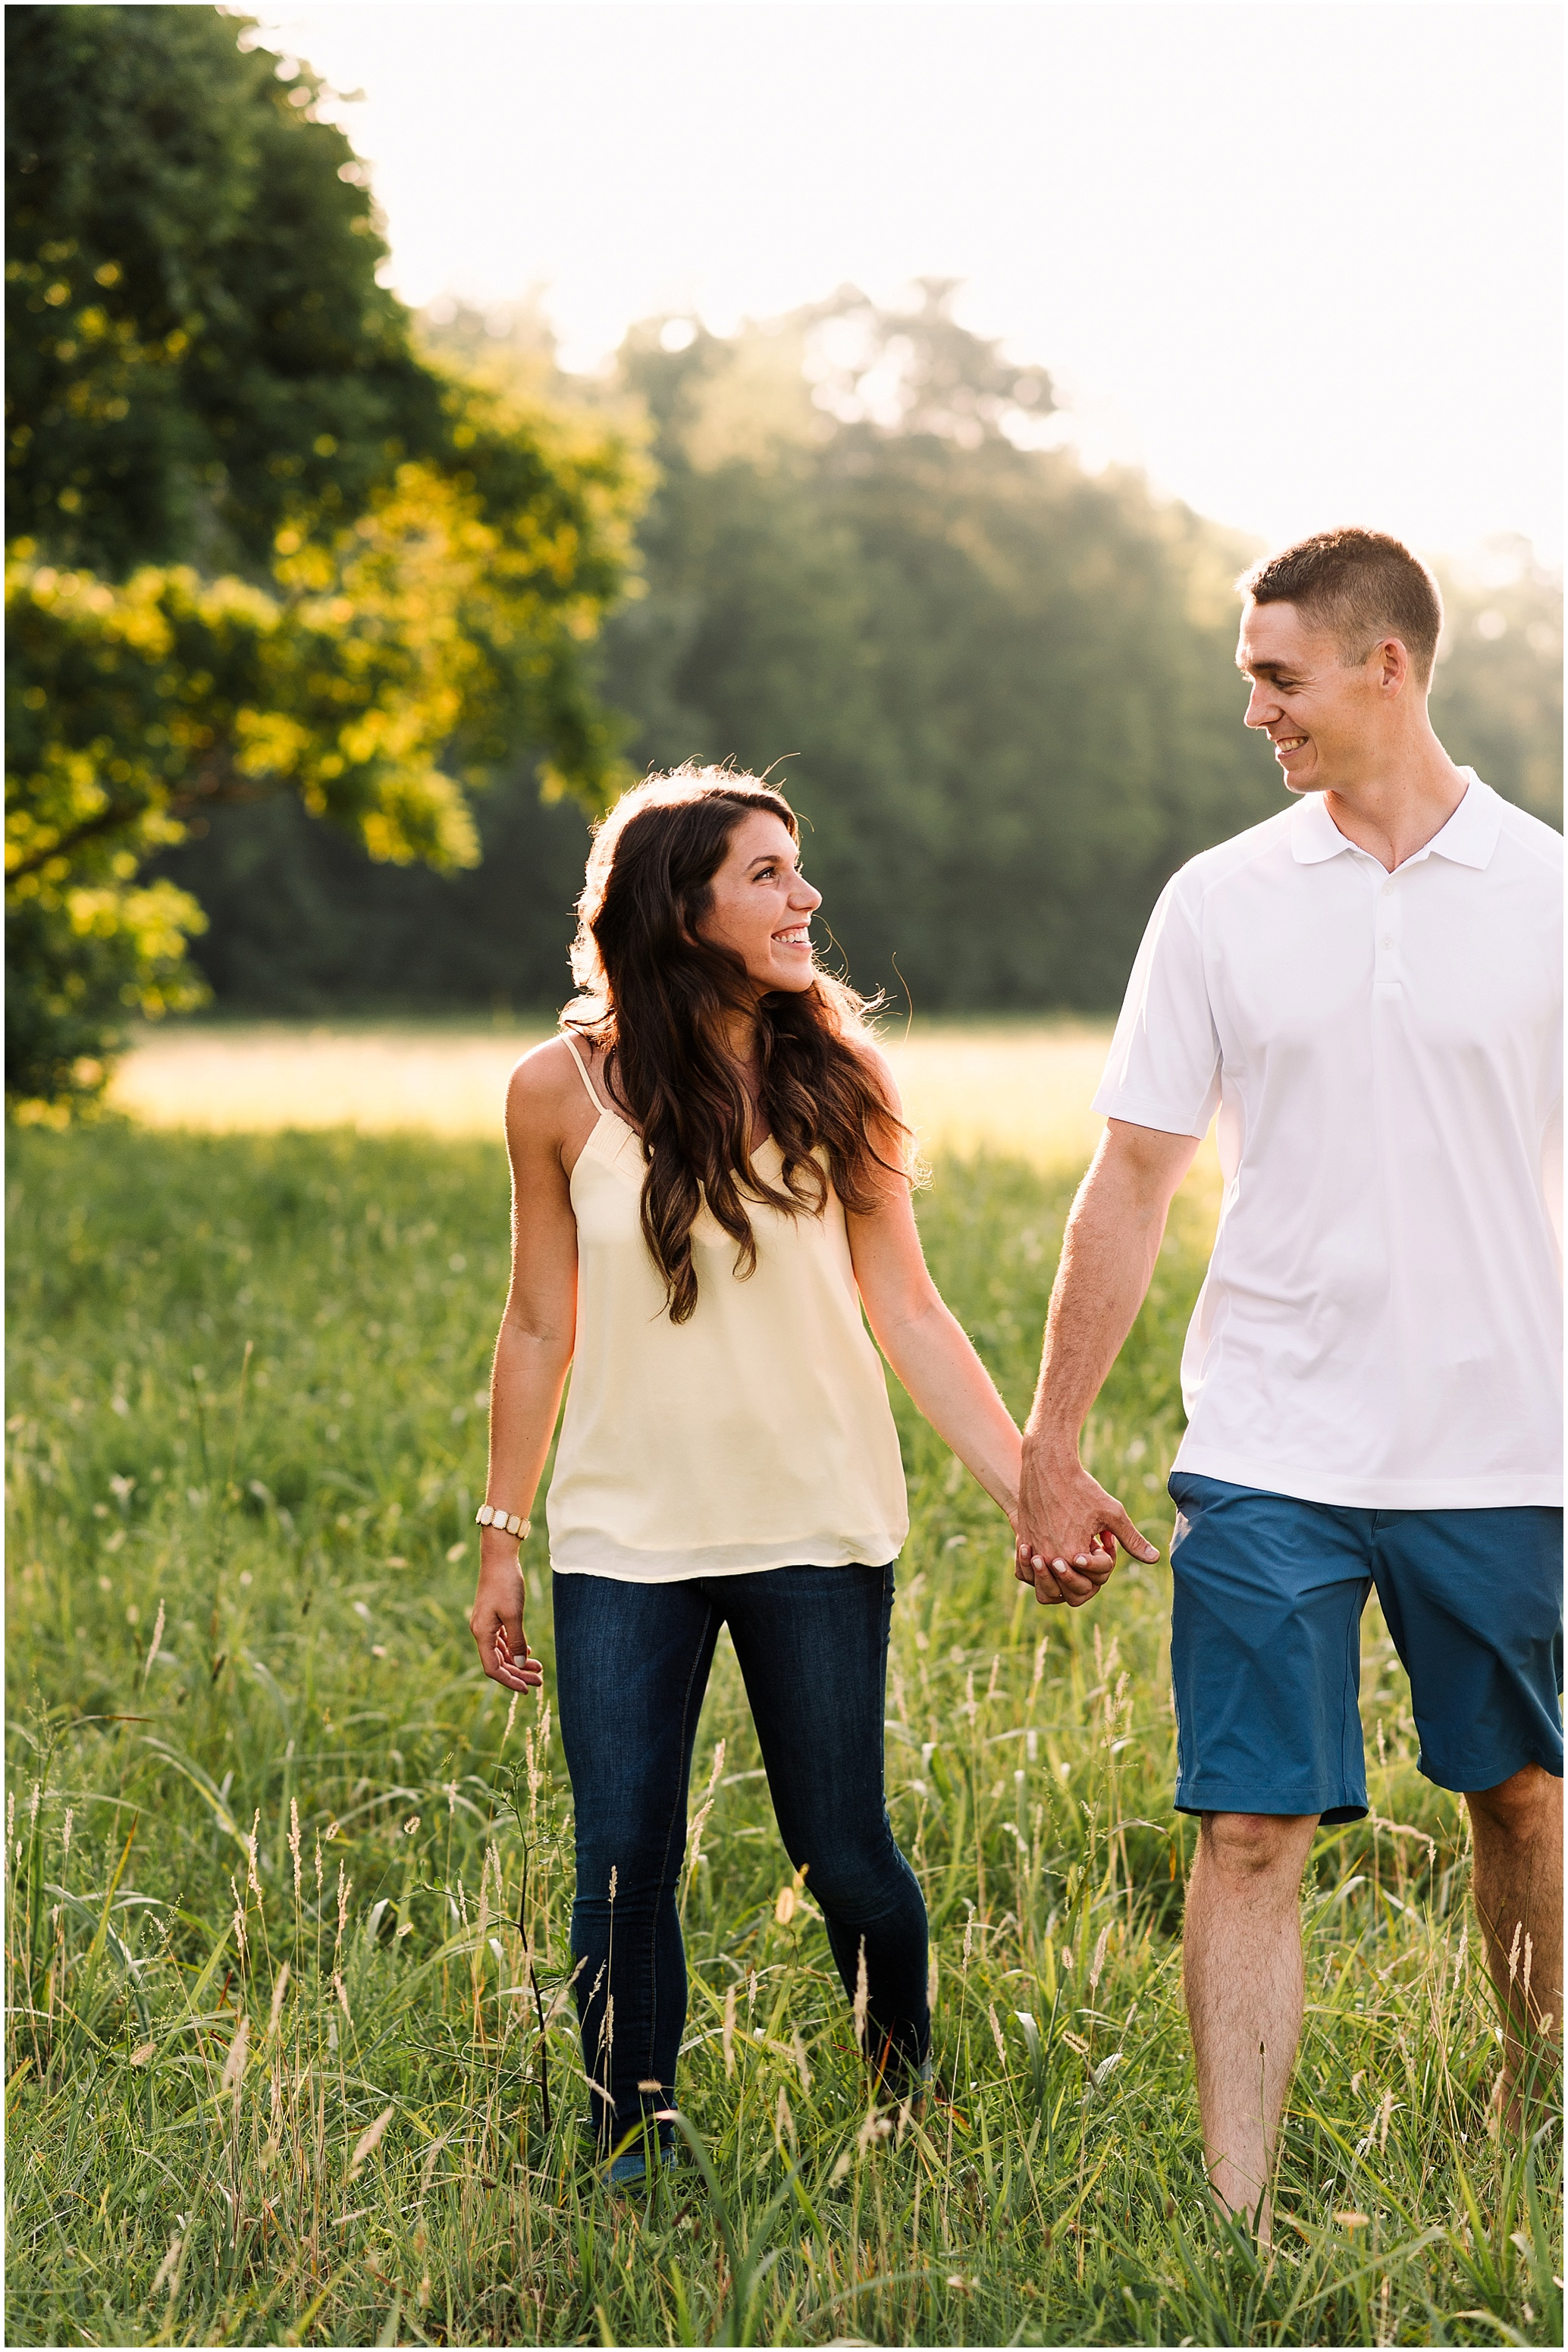 Hannah Leigh Photography Edgewater MD Engagement Session_4921.jpg